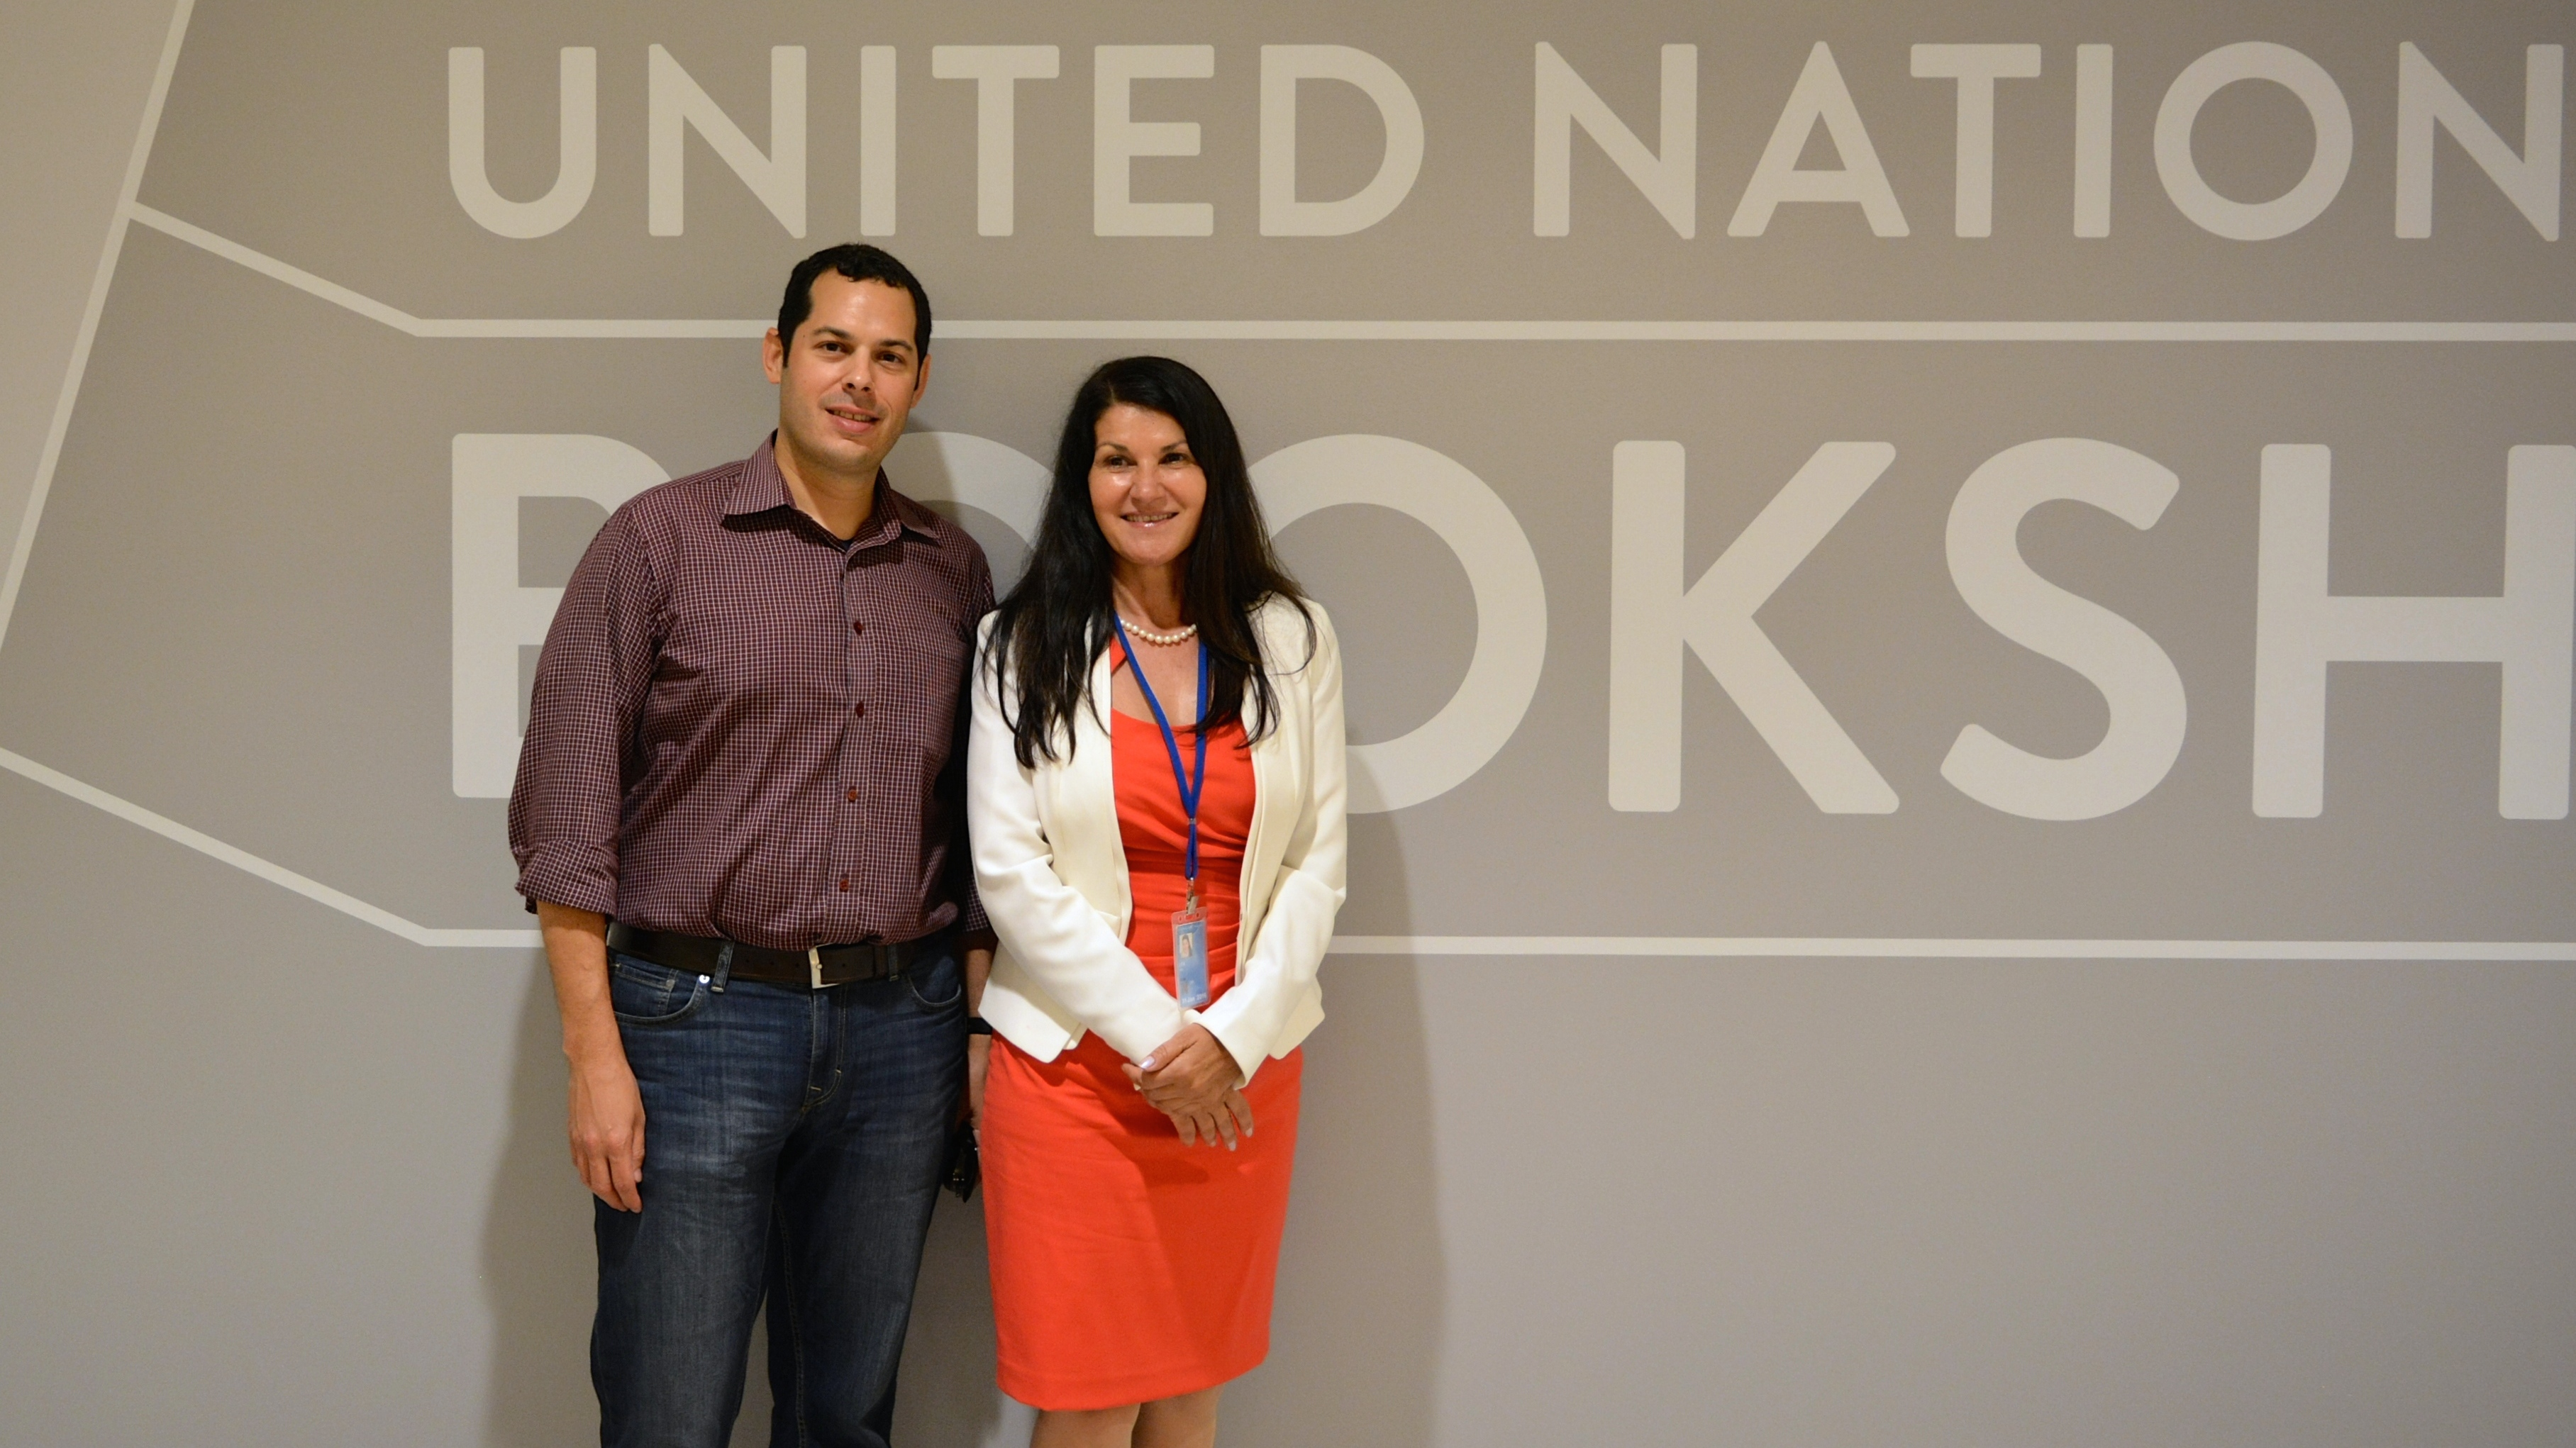 Ana Lita Ph.D., executive director of GBI, and Bruce Gelb M.D., F.A.C.S, GBI board member, at the United Nations